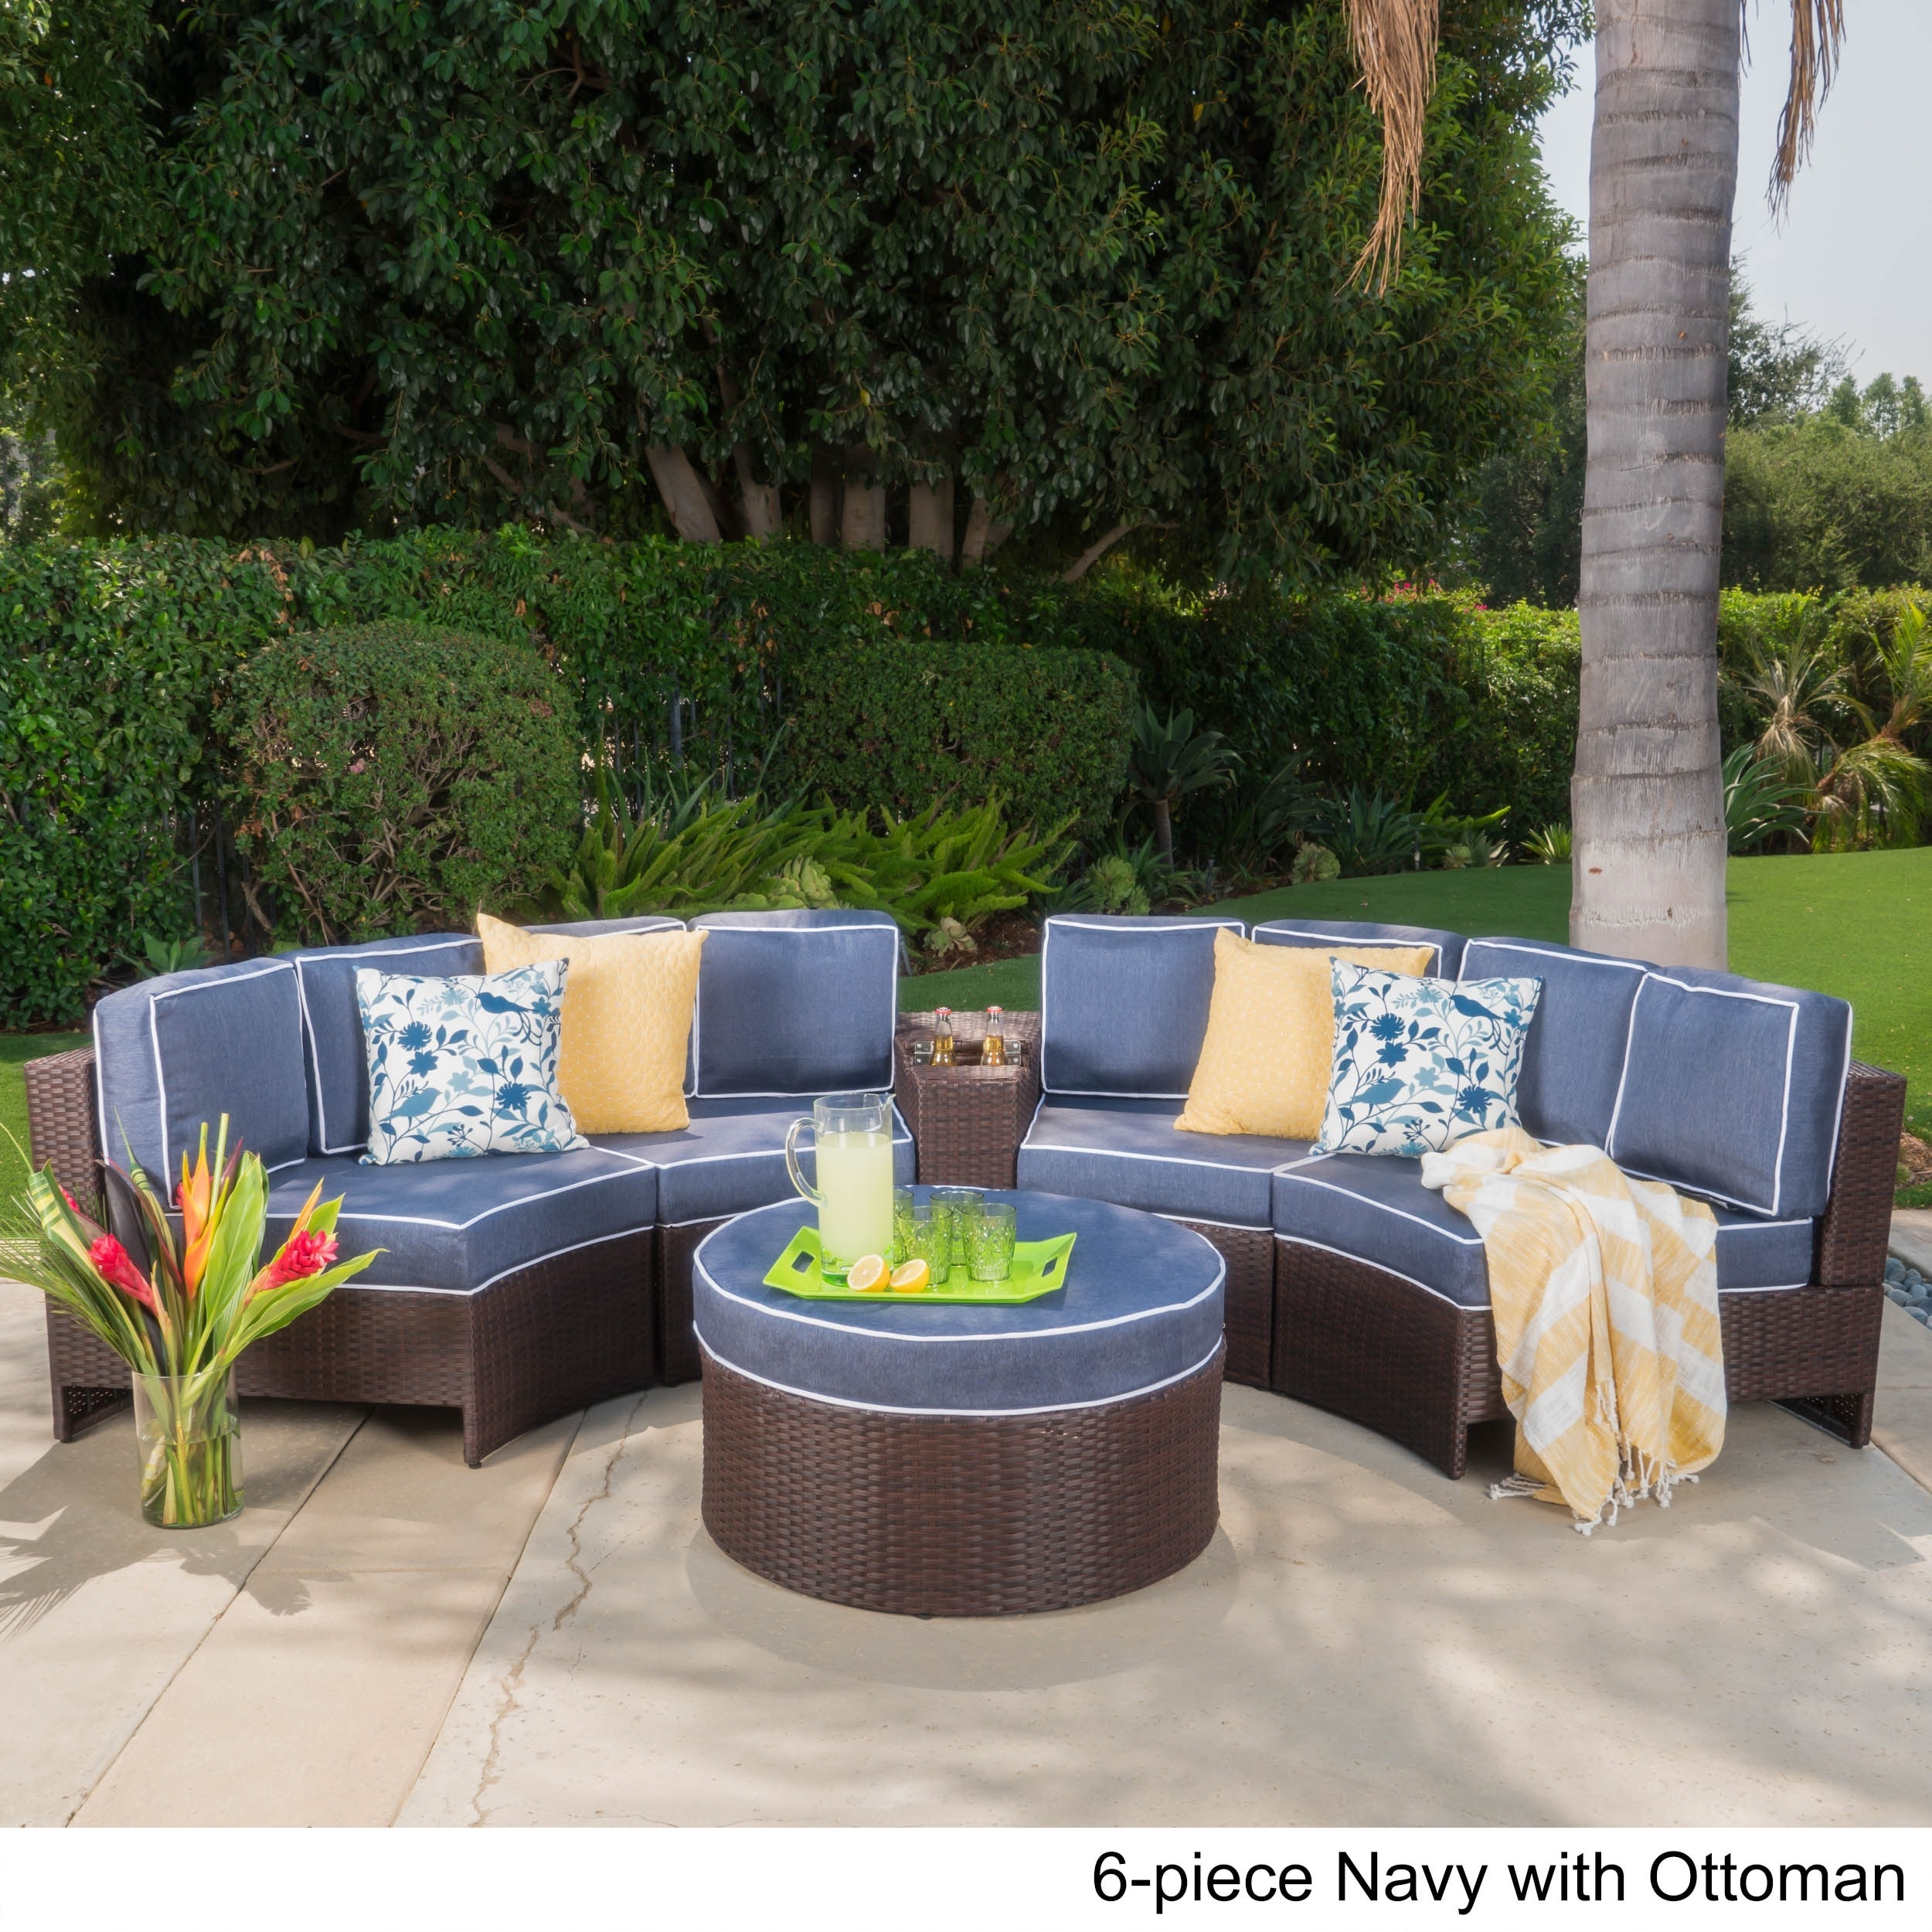 Madras Zanzibar Outdoor 12 Seater Wicker Curved Sectional Set with Ottoman  by Christopher Knight Home